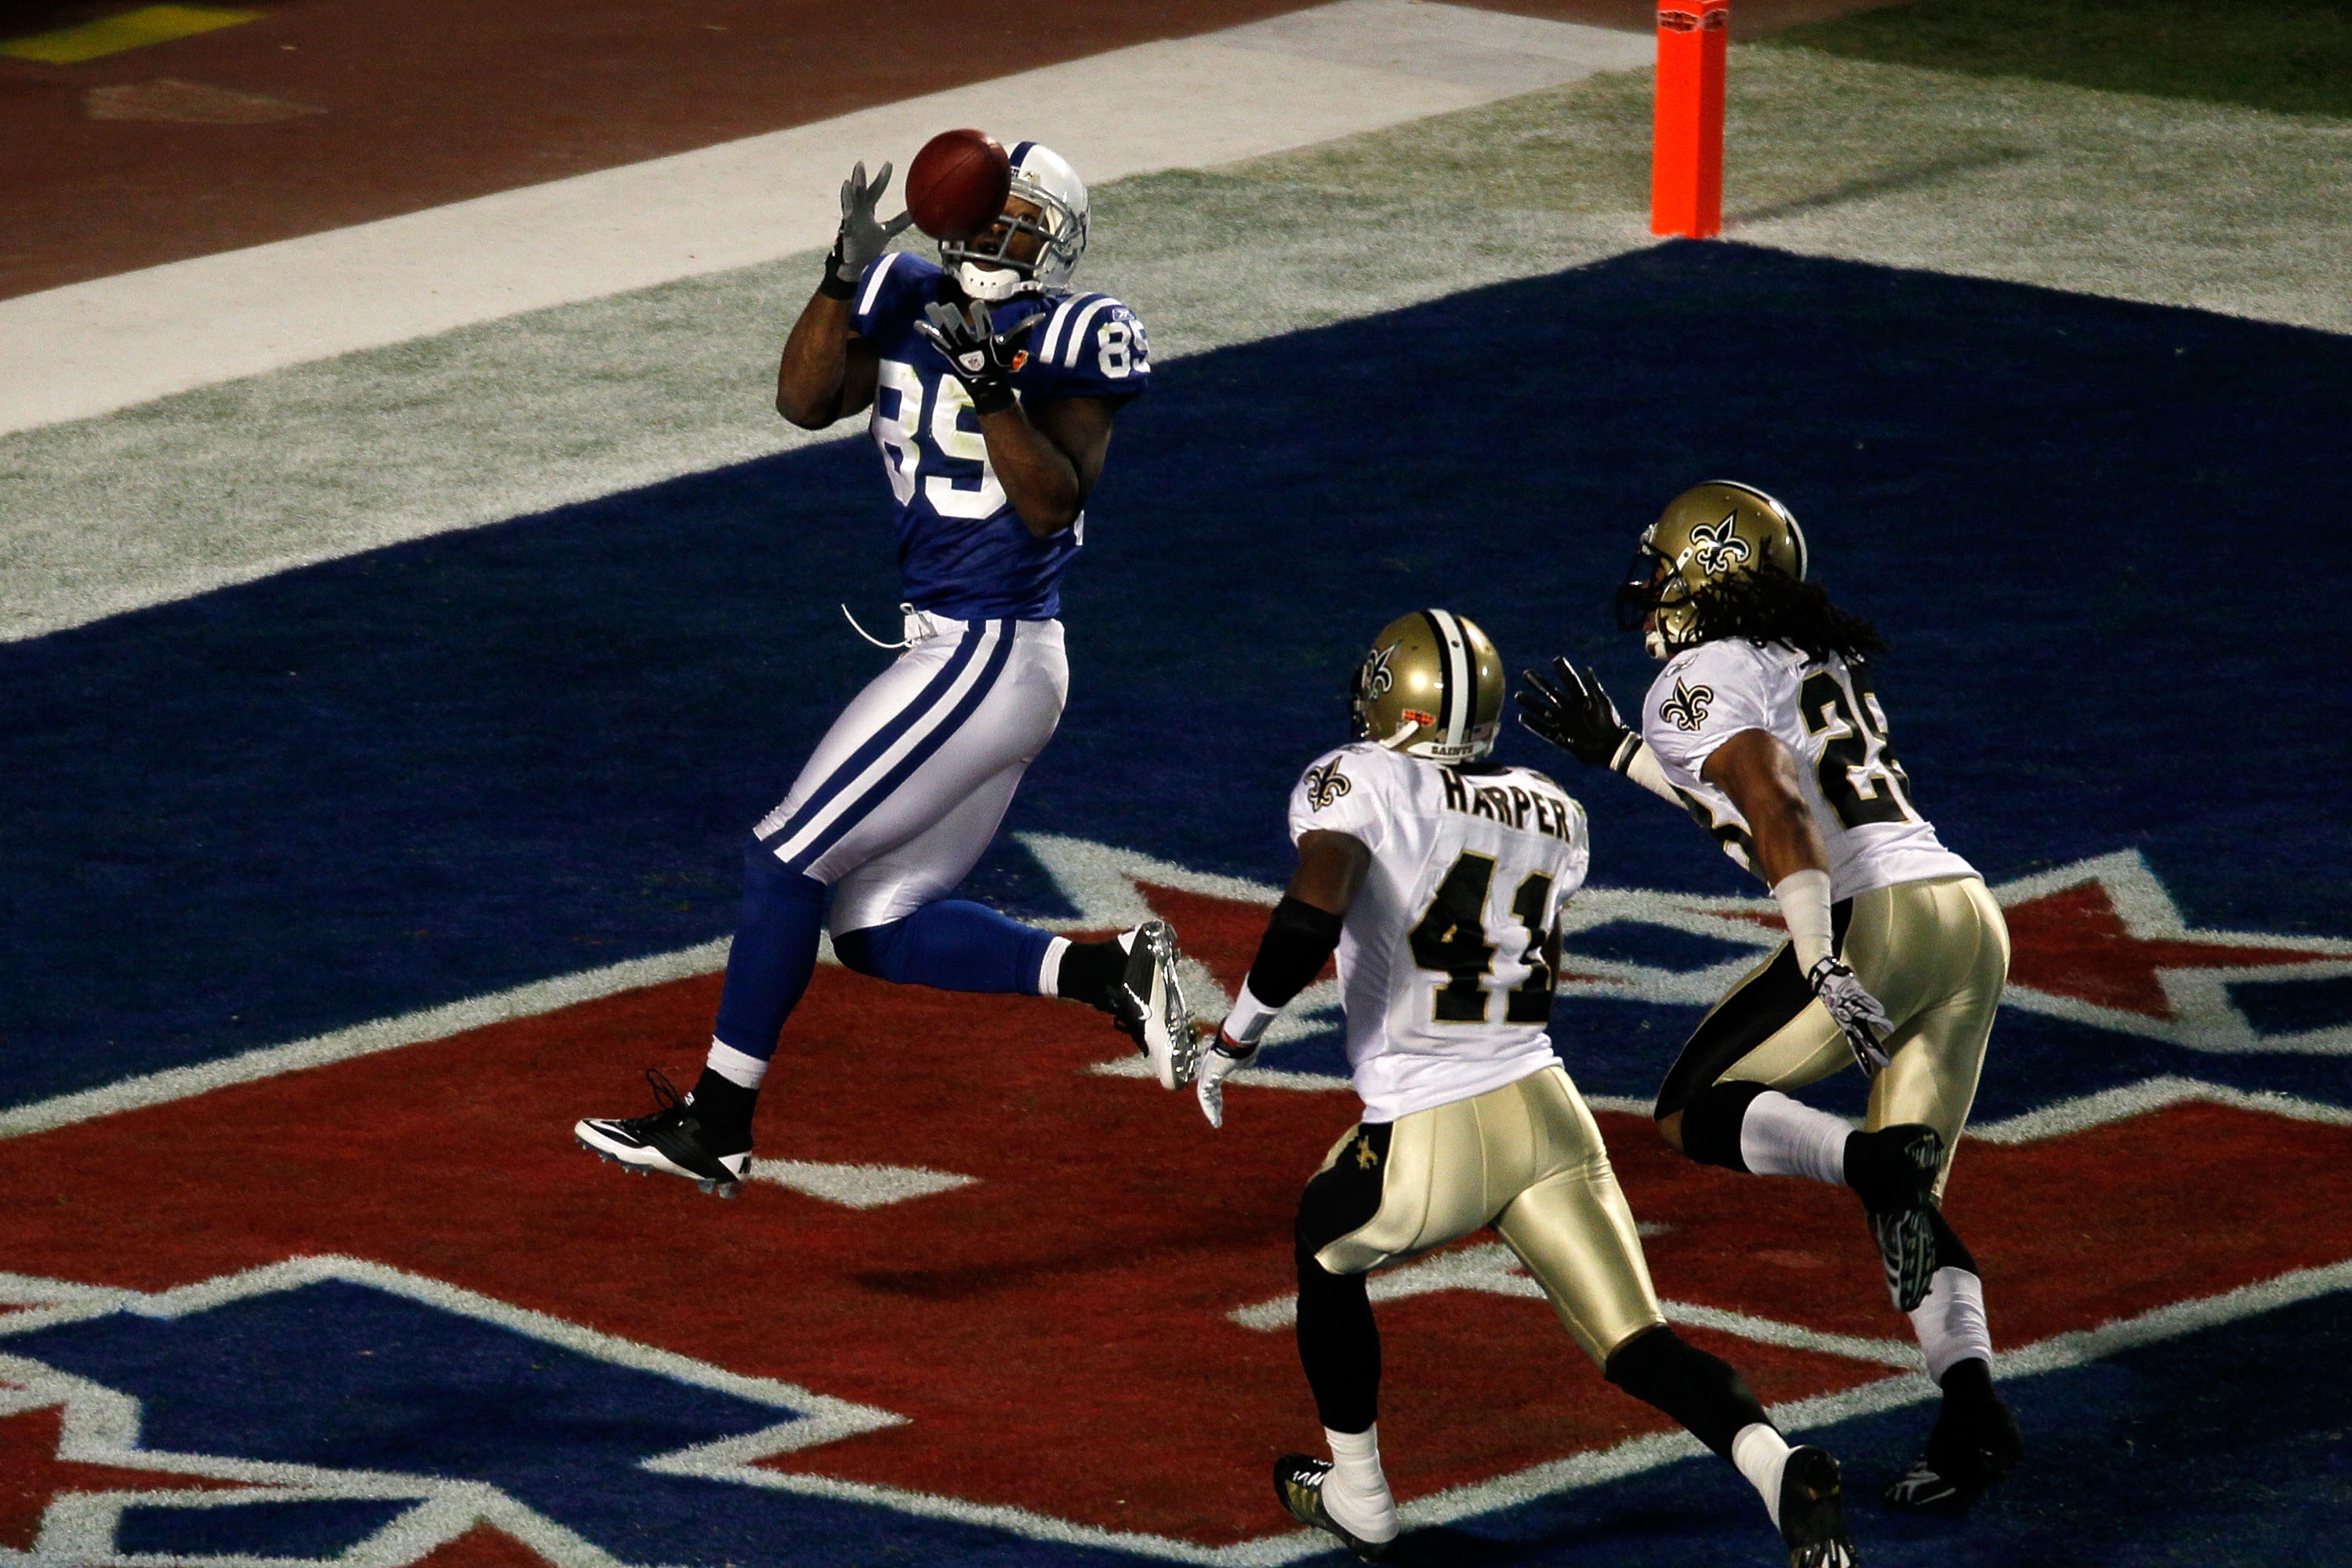 MIAMI GARDENS, FL - FEBRUARY 07:  Pierre Garcon #85 of the Indianapolis Colts catches a touchdown pass in the first quarter against the New Orleans Saints during Super Bowl XLIV on February 7, 2010 at Sun Life Stadium in Miami Gardens, Florida.  (Photo by